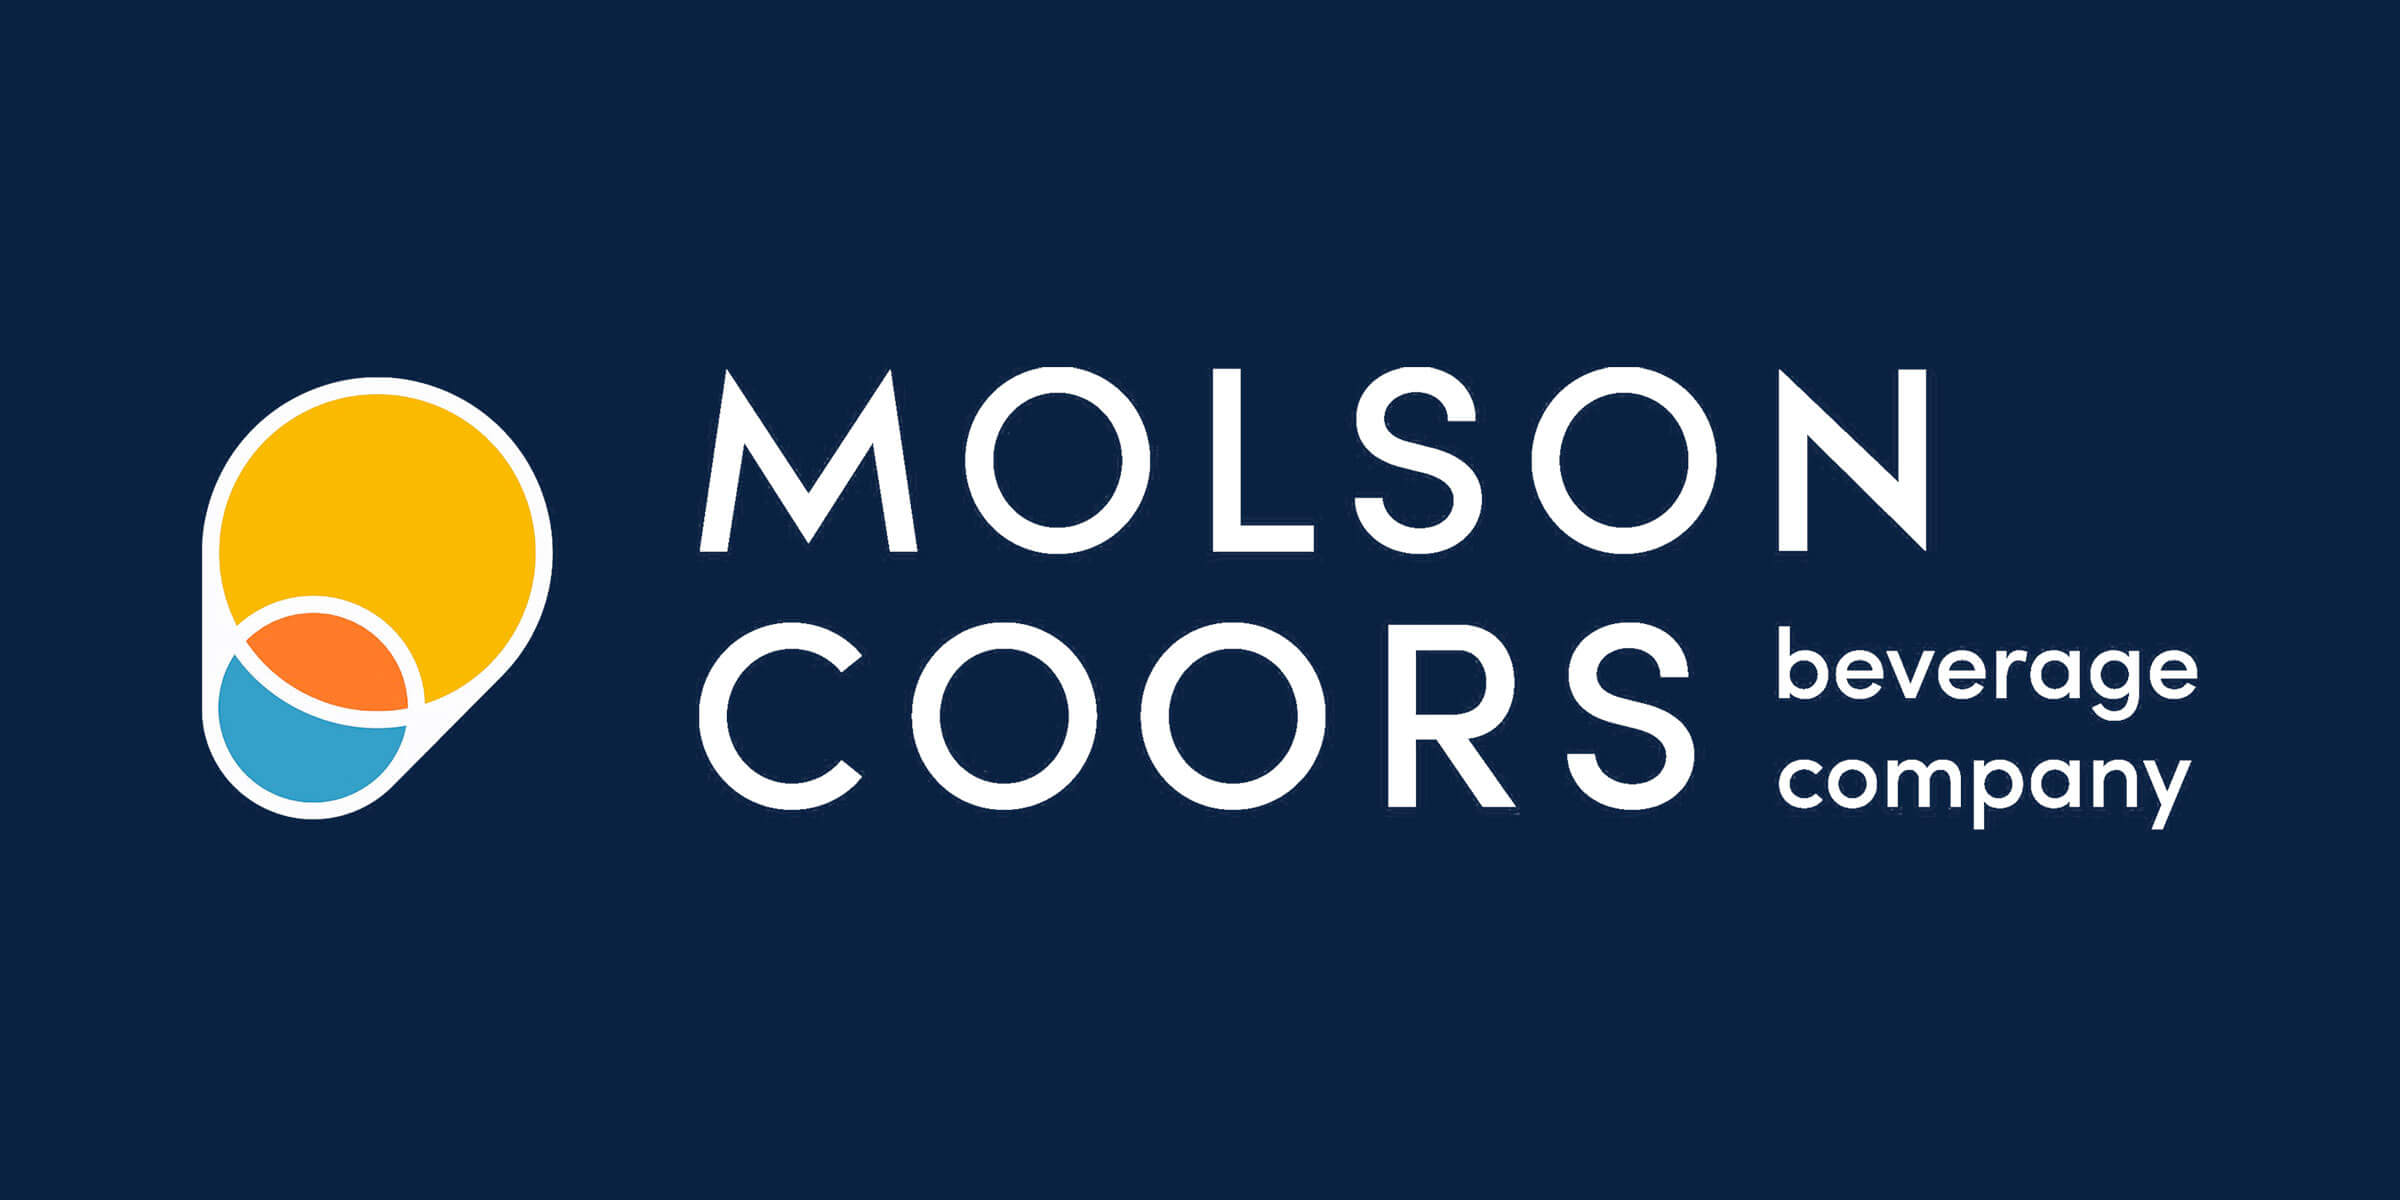 The new corporate identity for Molson Coors Beverage Company